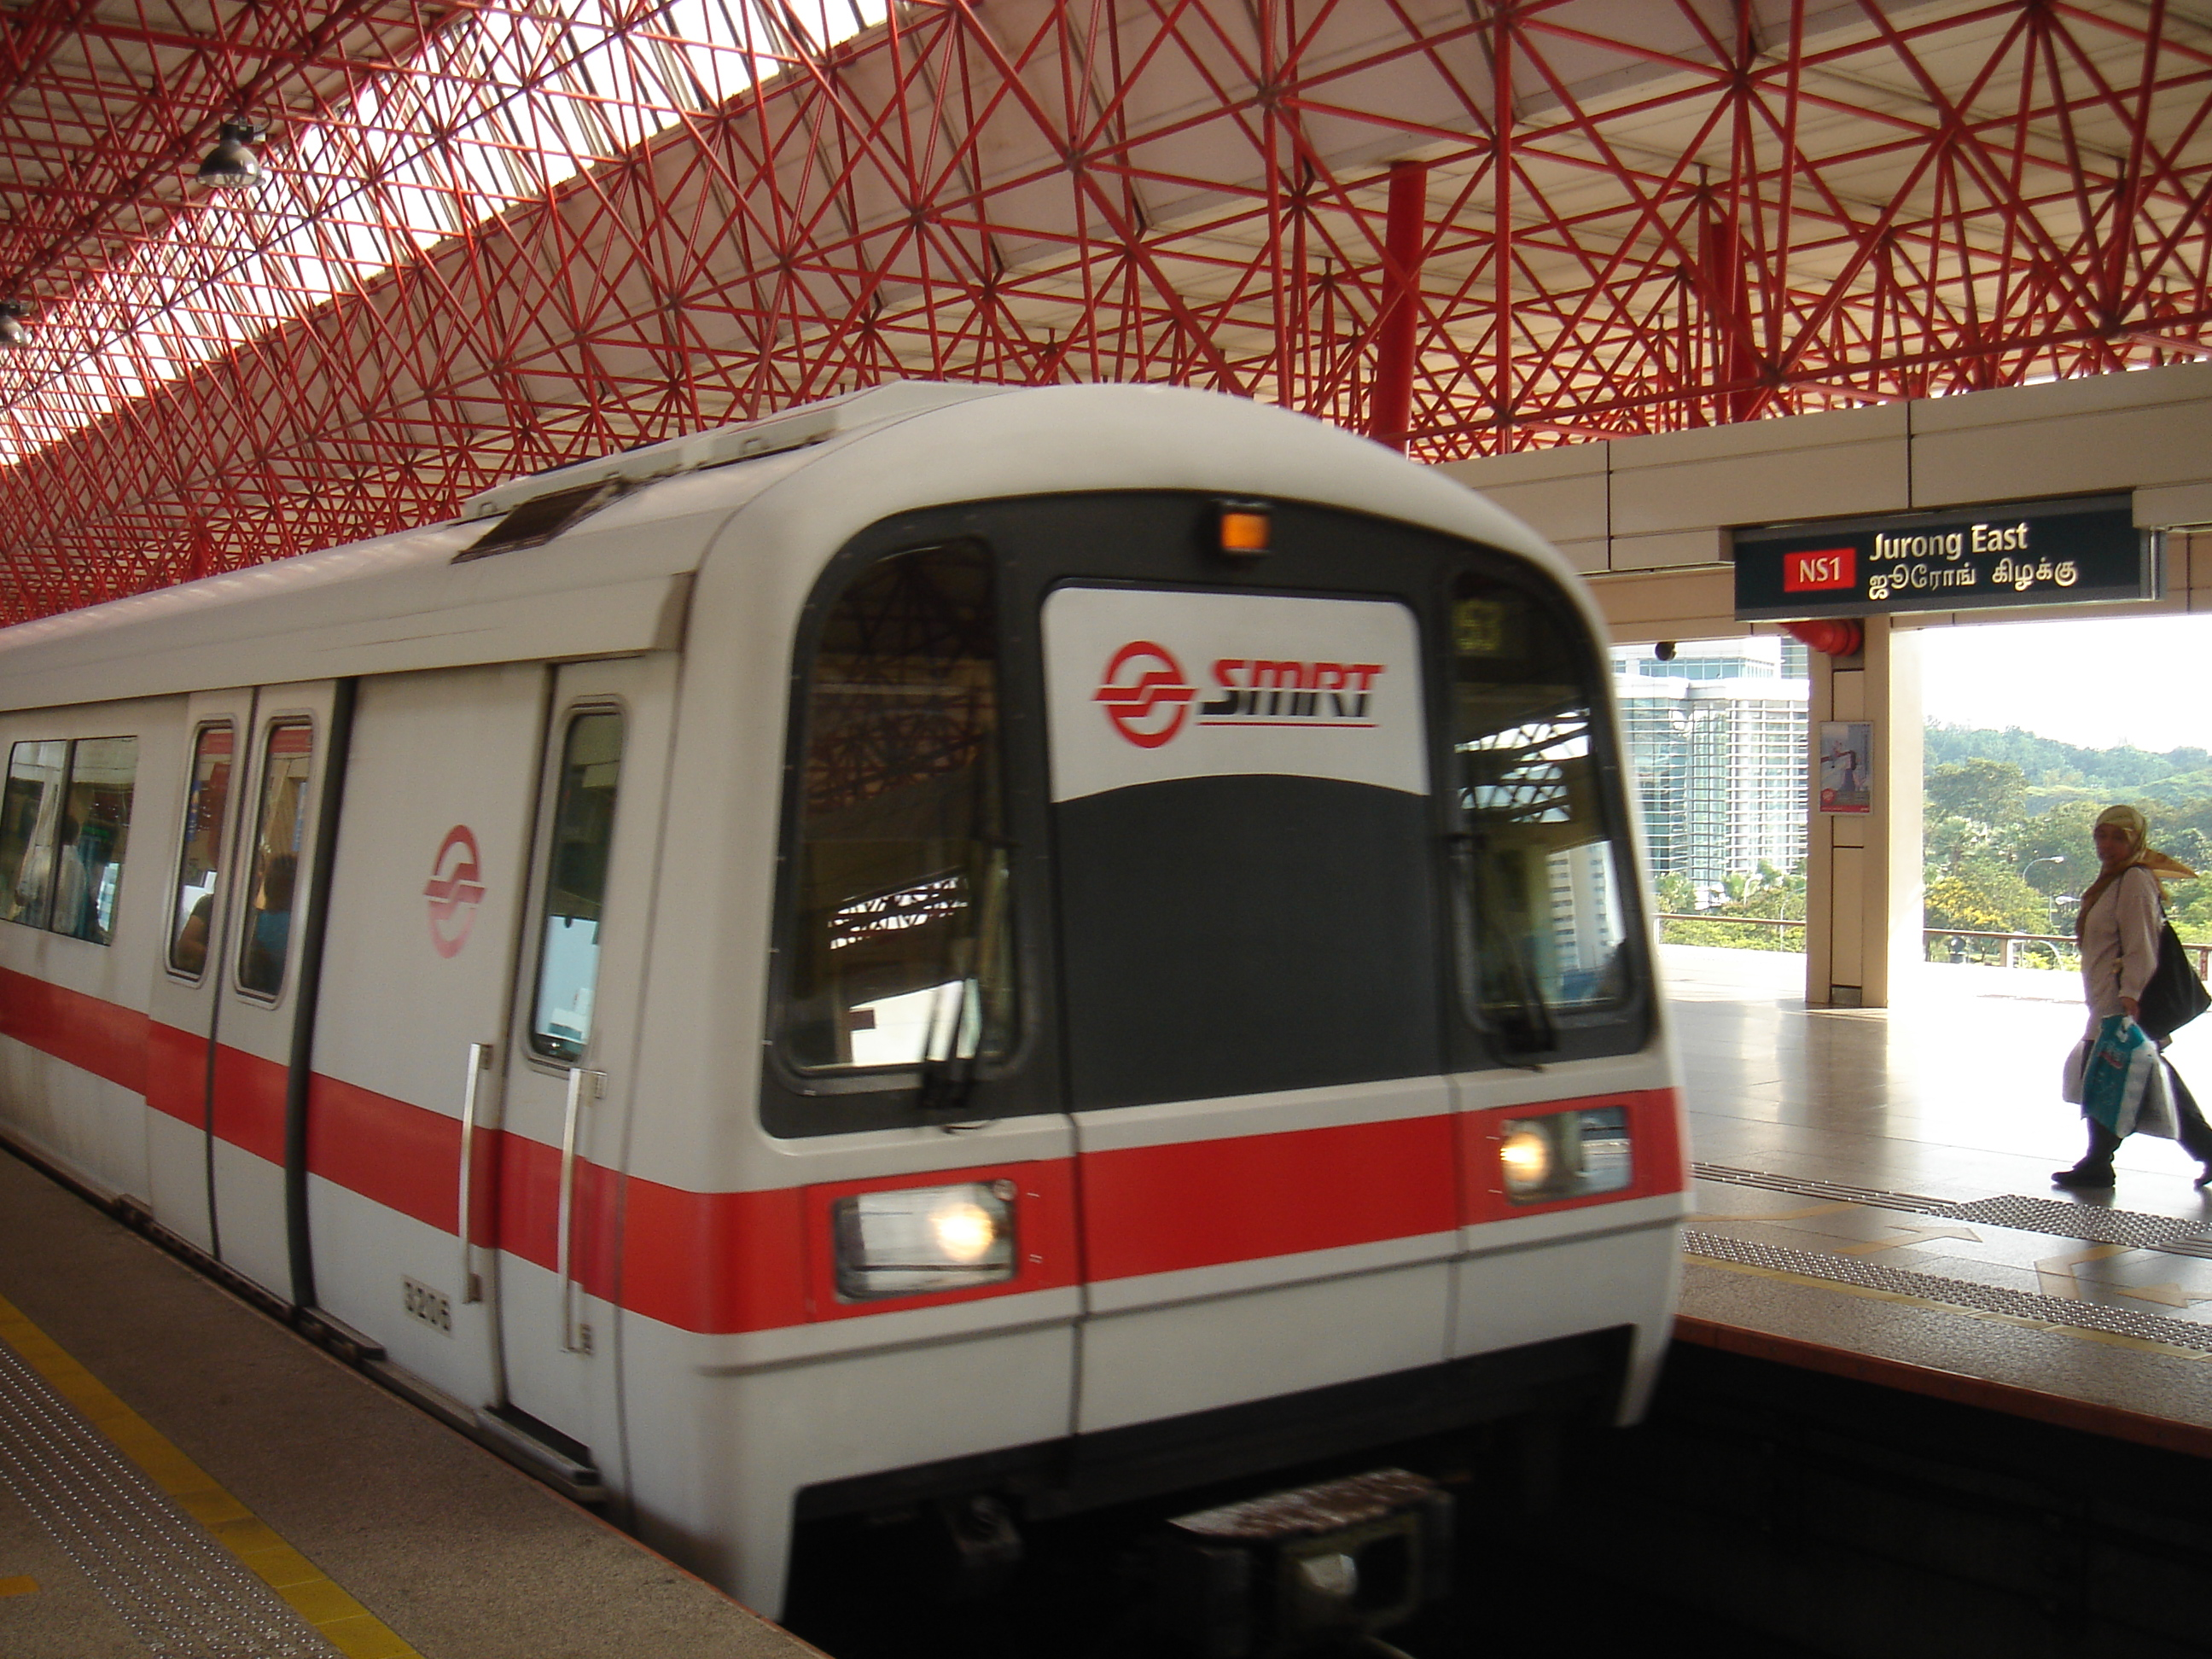 SMRT was fined record SGD 400,000